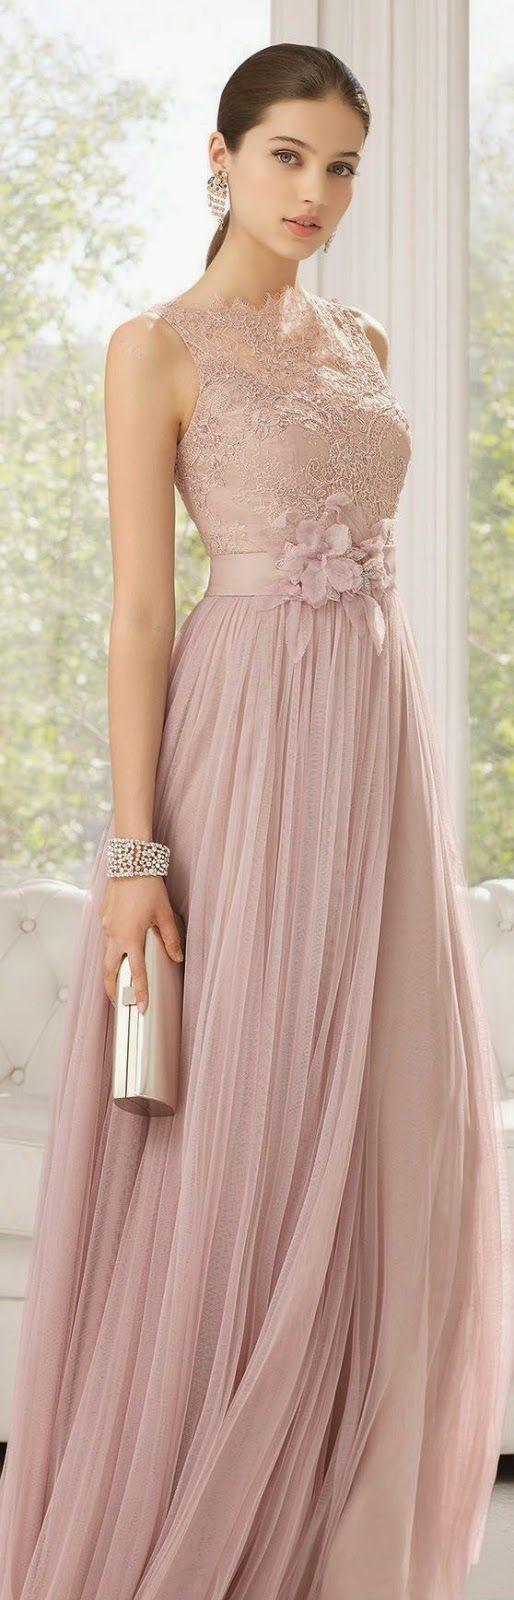 best mother of the groom dresses images on pinterest